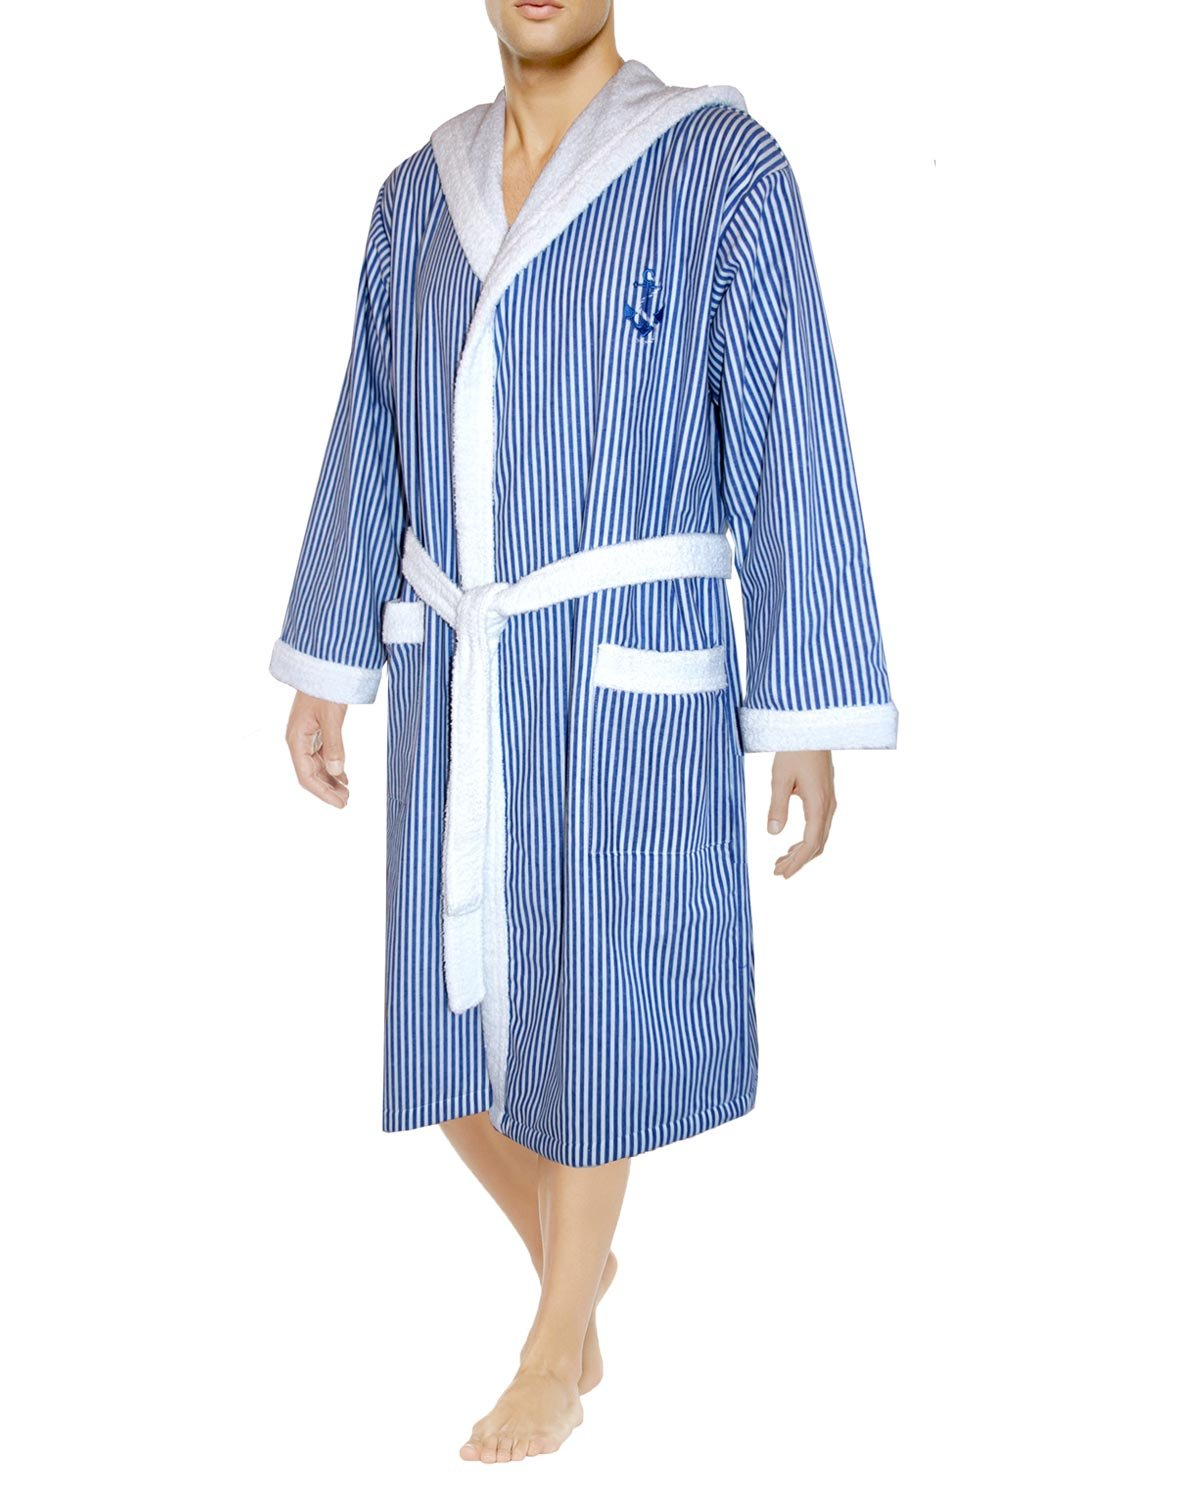 Armani International Nautical Hooded Bathrobe Large by Armani International